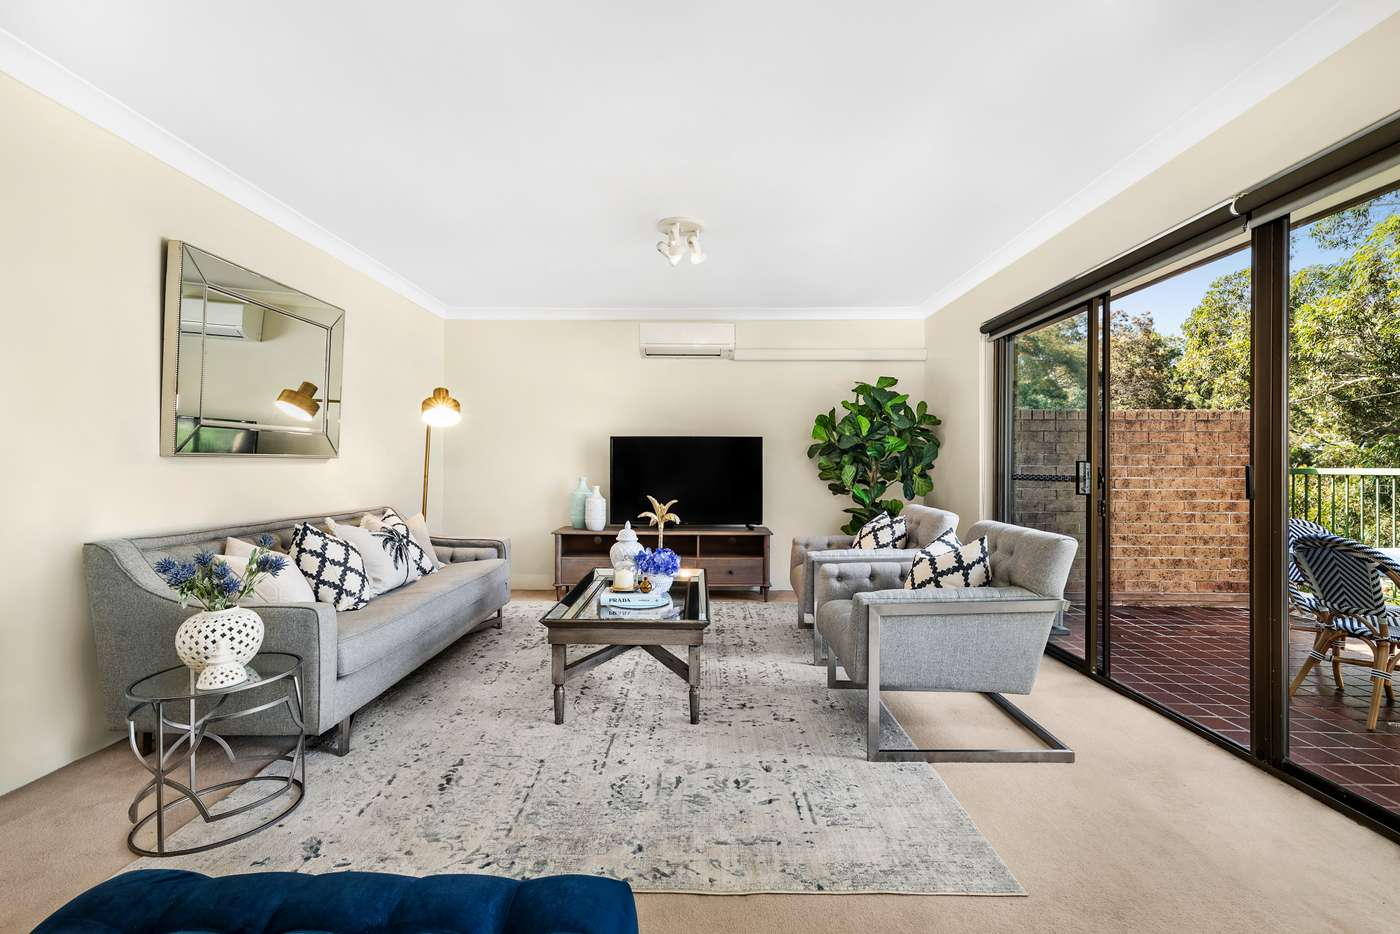 Main view of Homely apartment listing, 199/25 Best Street, Lane Cove NSW 2066